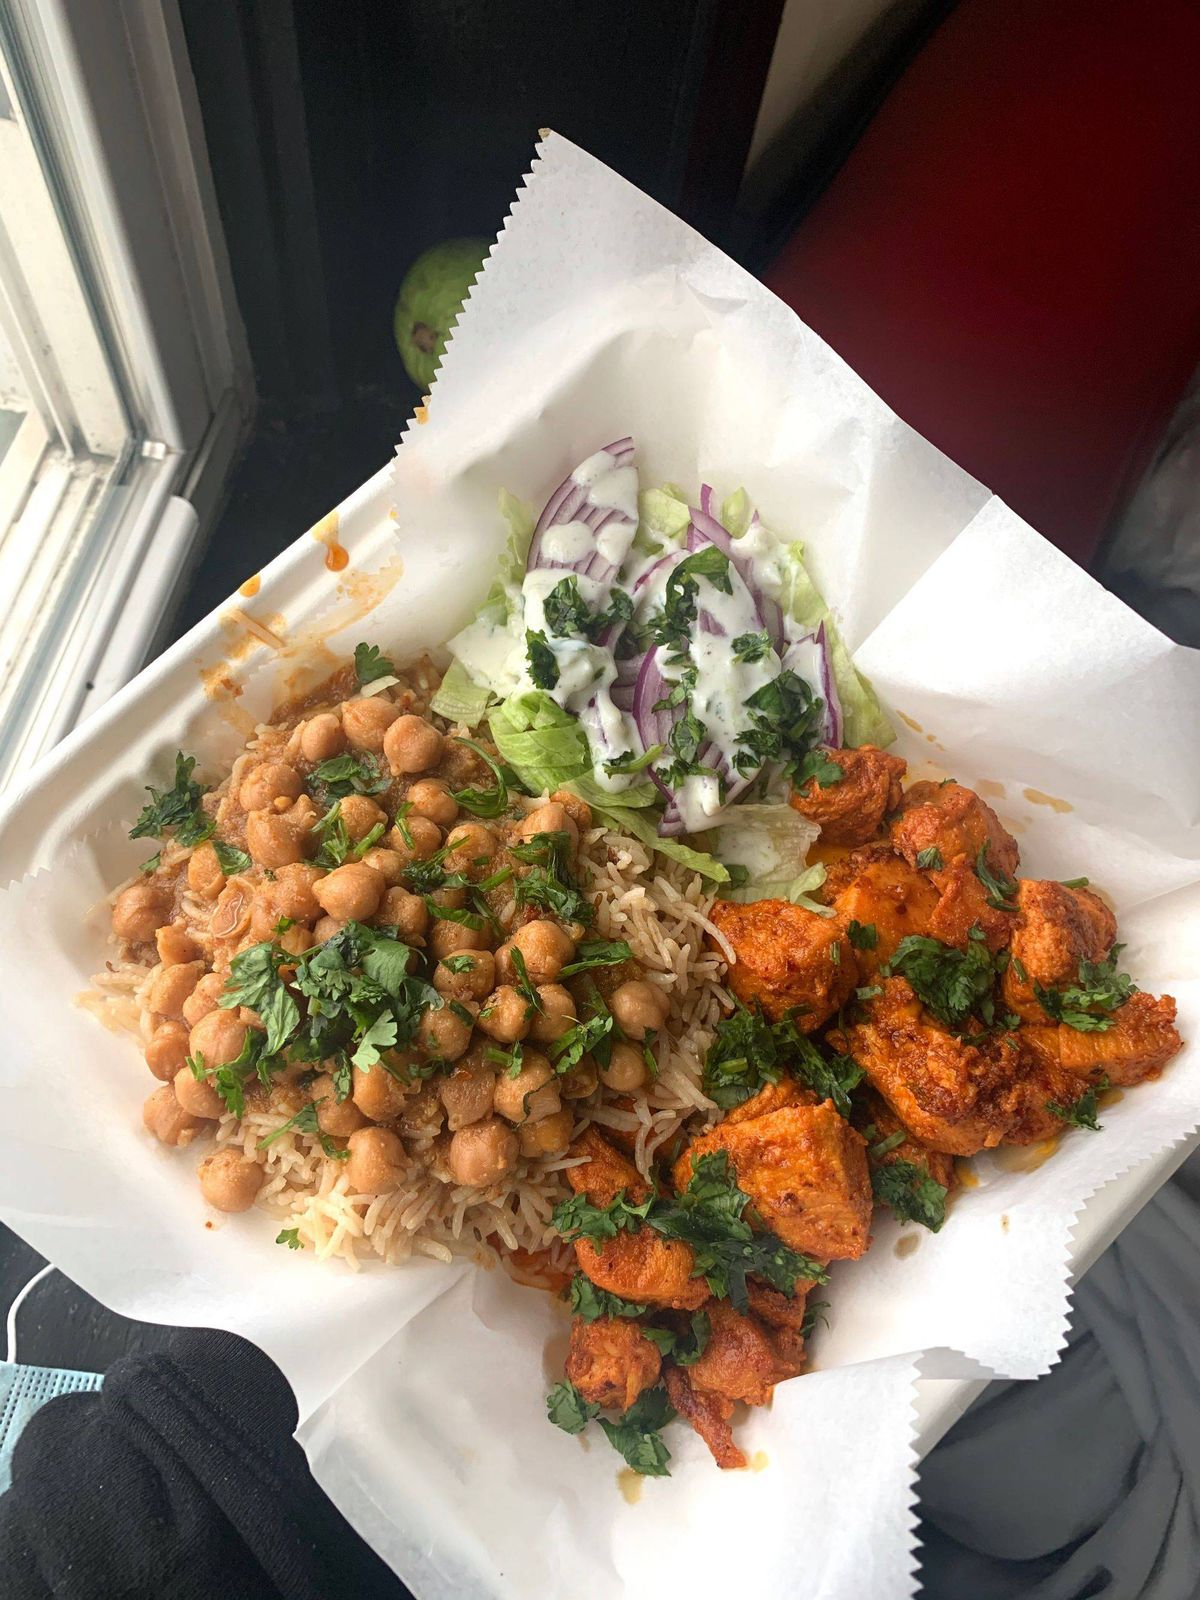 Jaya's tiffin has chicken kebabs, chickpeas, rice, and a salad with mint chutney